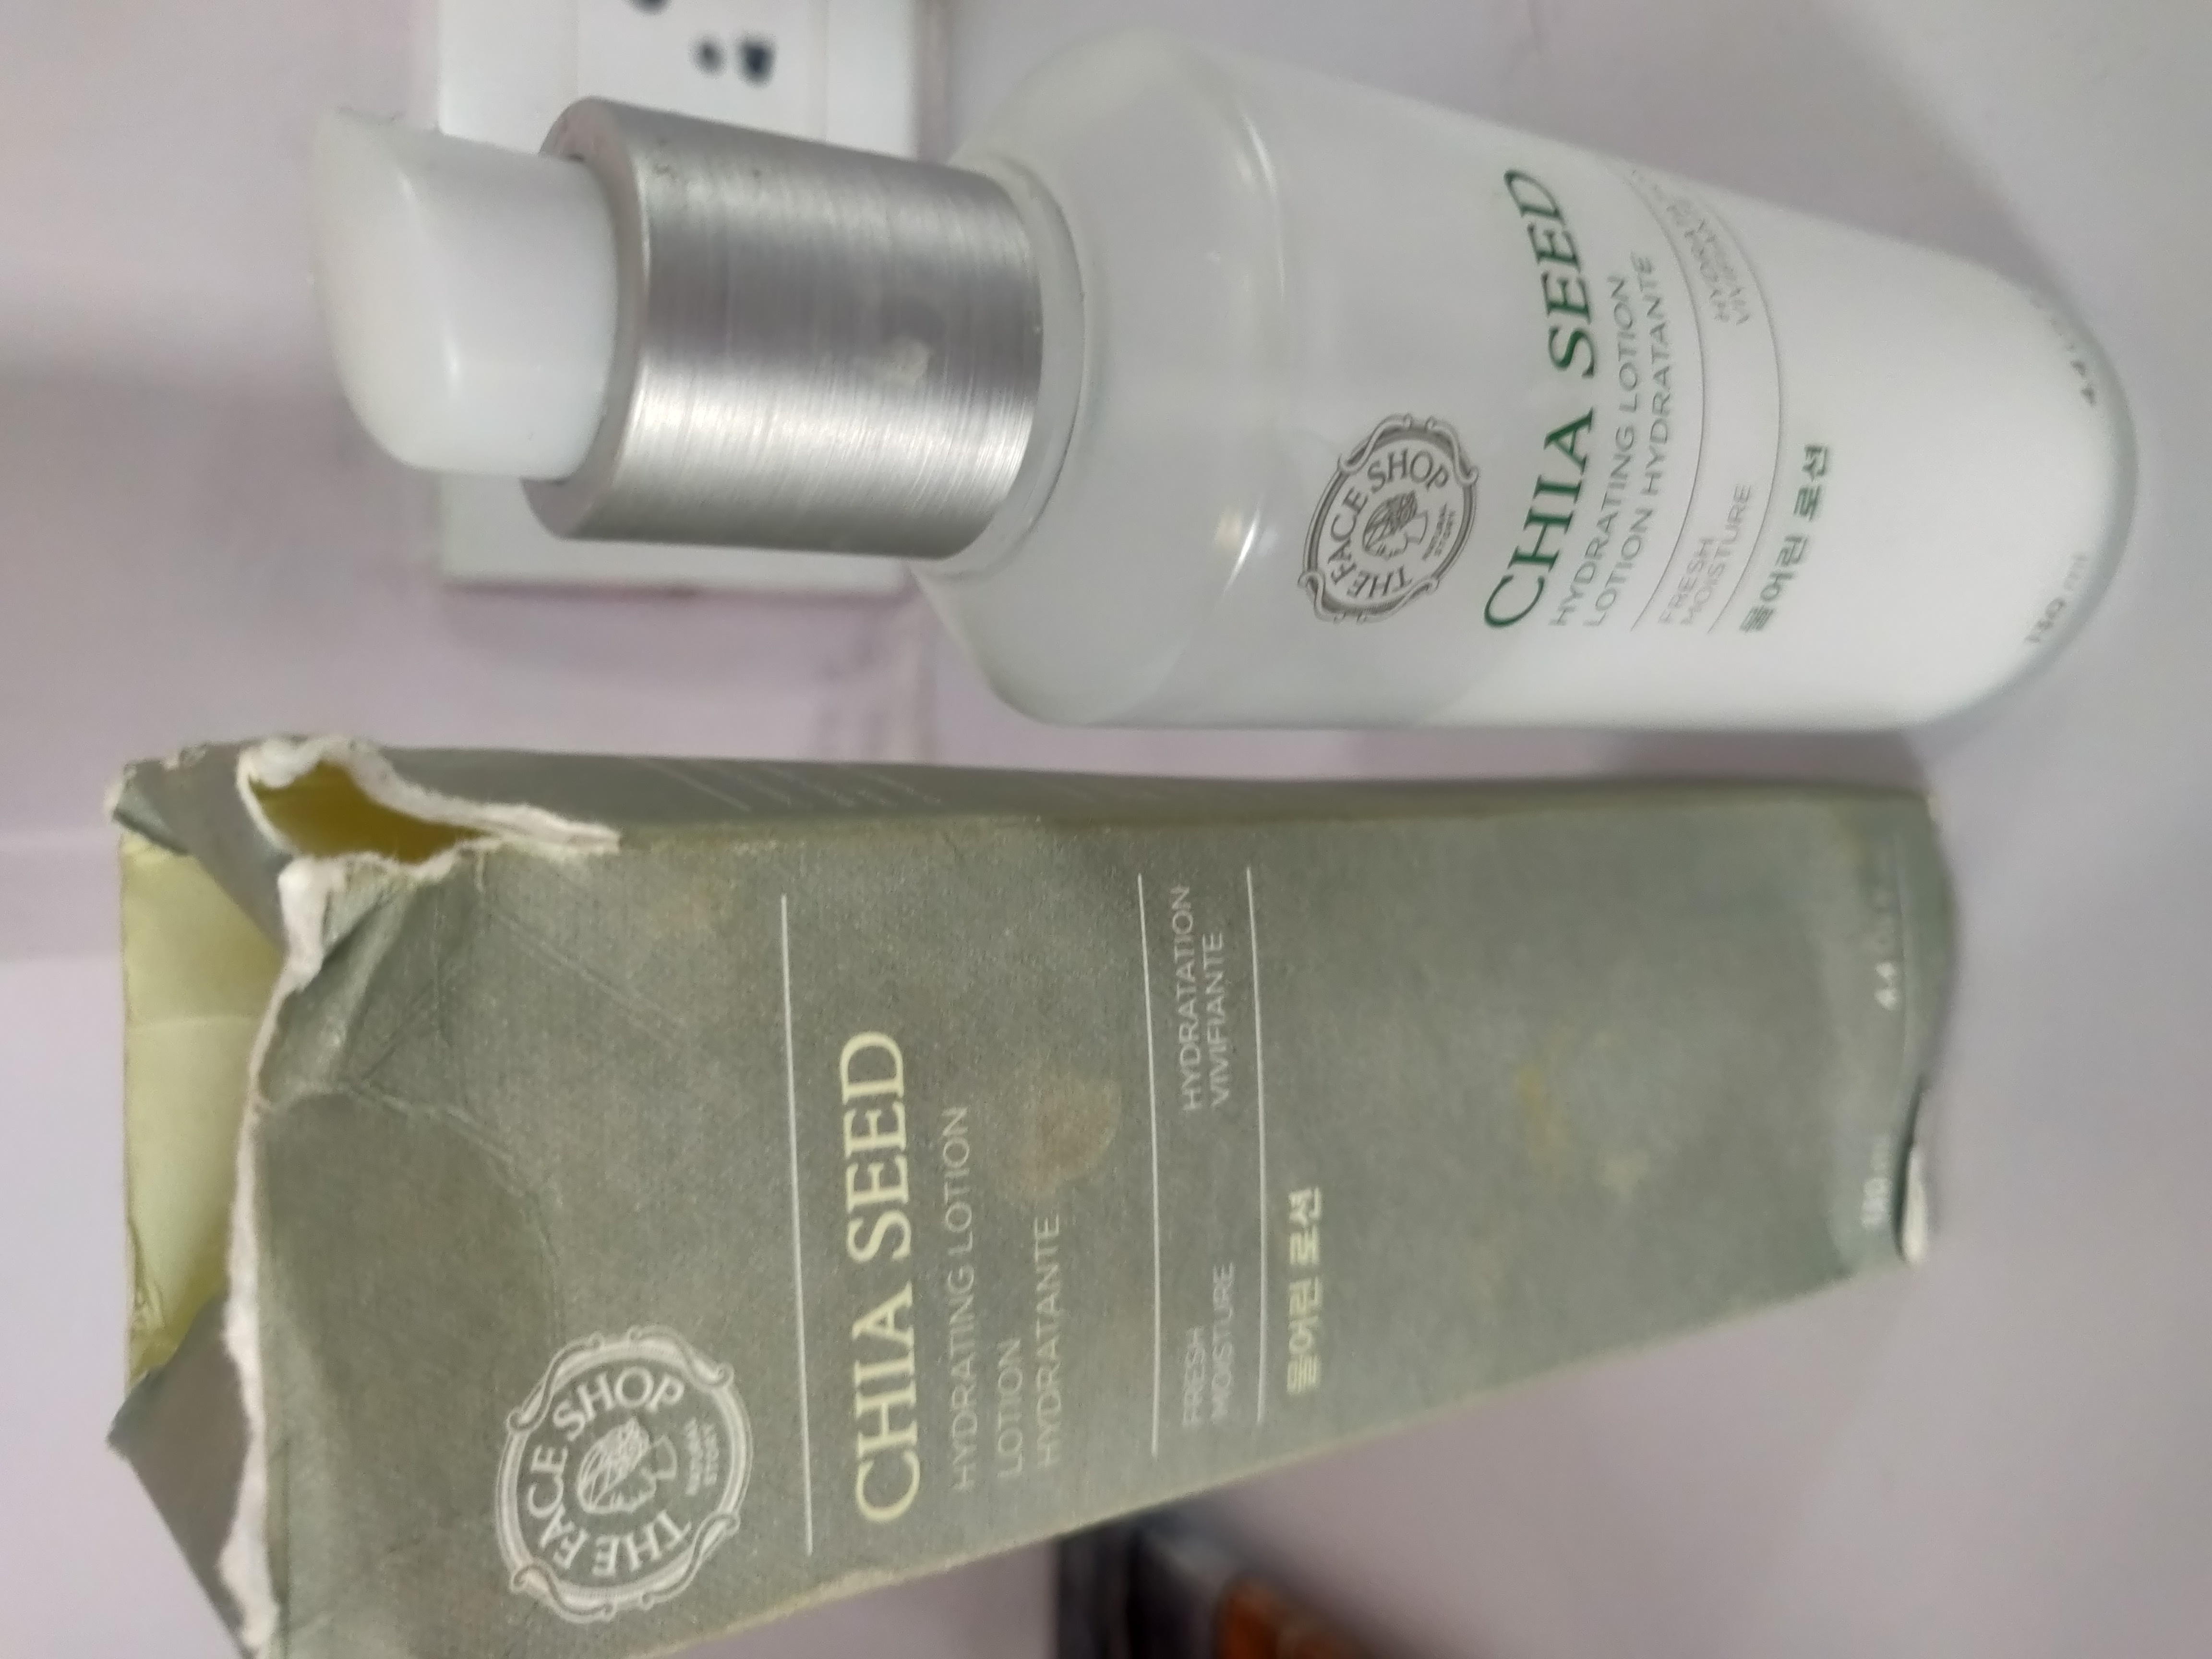 The Face Shop Chia Seed Hydrating Lotion-My daily pump of moisture-By apekshap